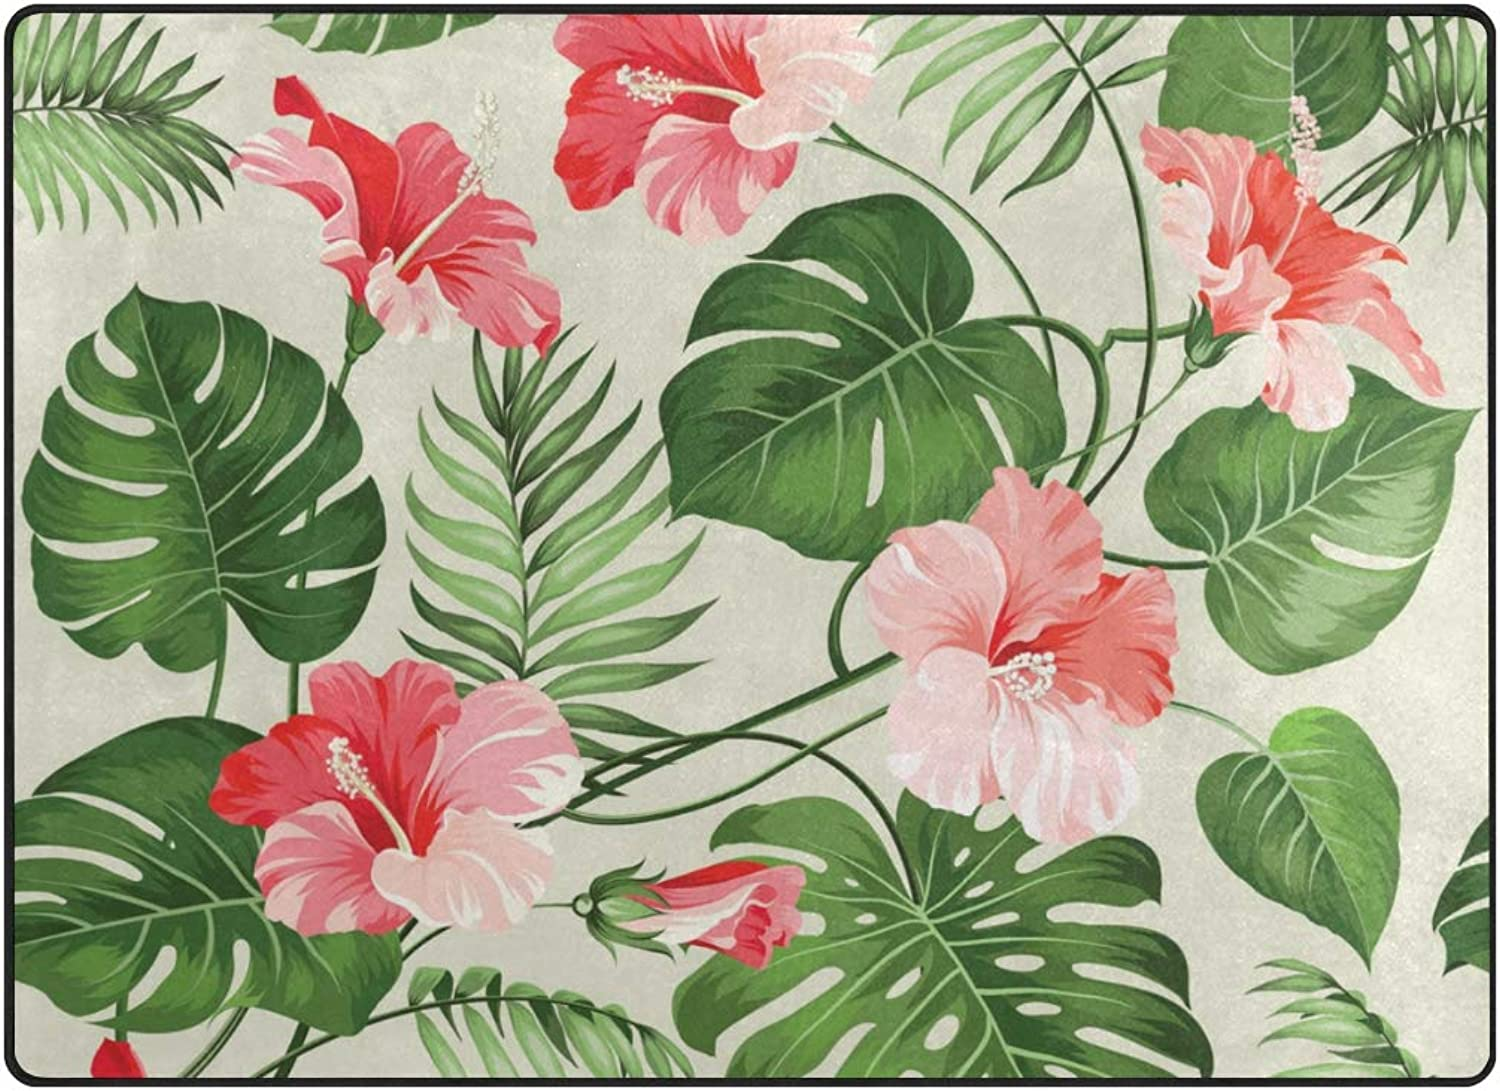 SUABO 63 x 48 inches Area Rug Non-Slip Floor Mat Doormats Living Room Tropical Pattern Printed